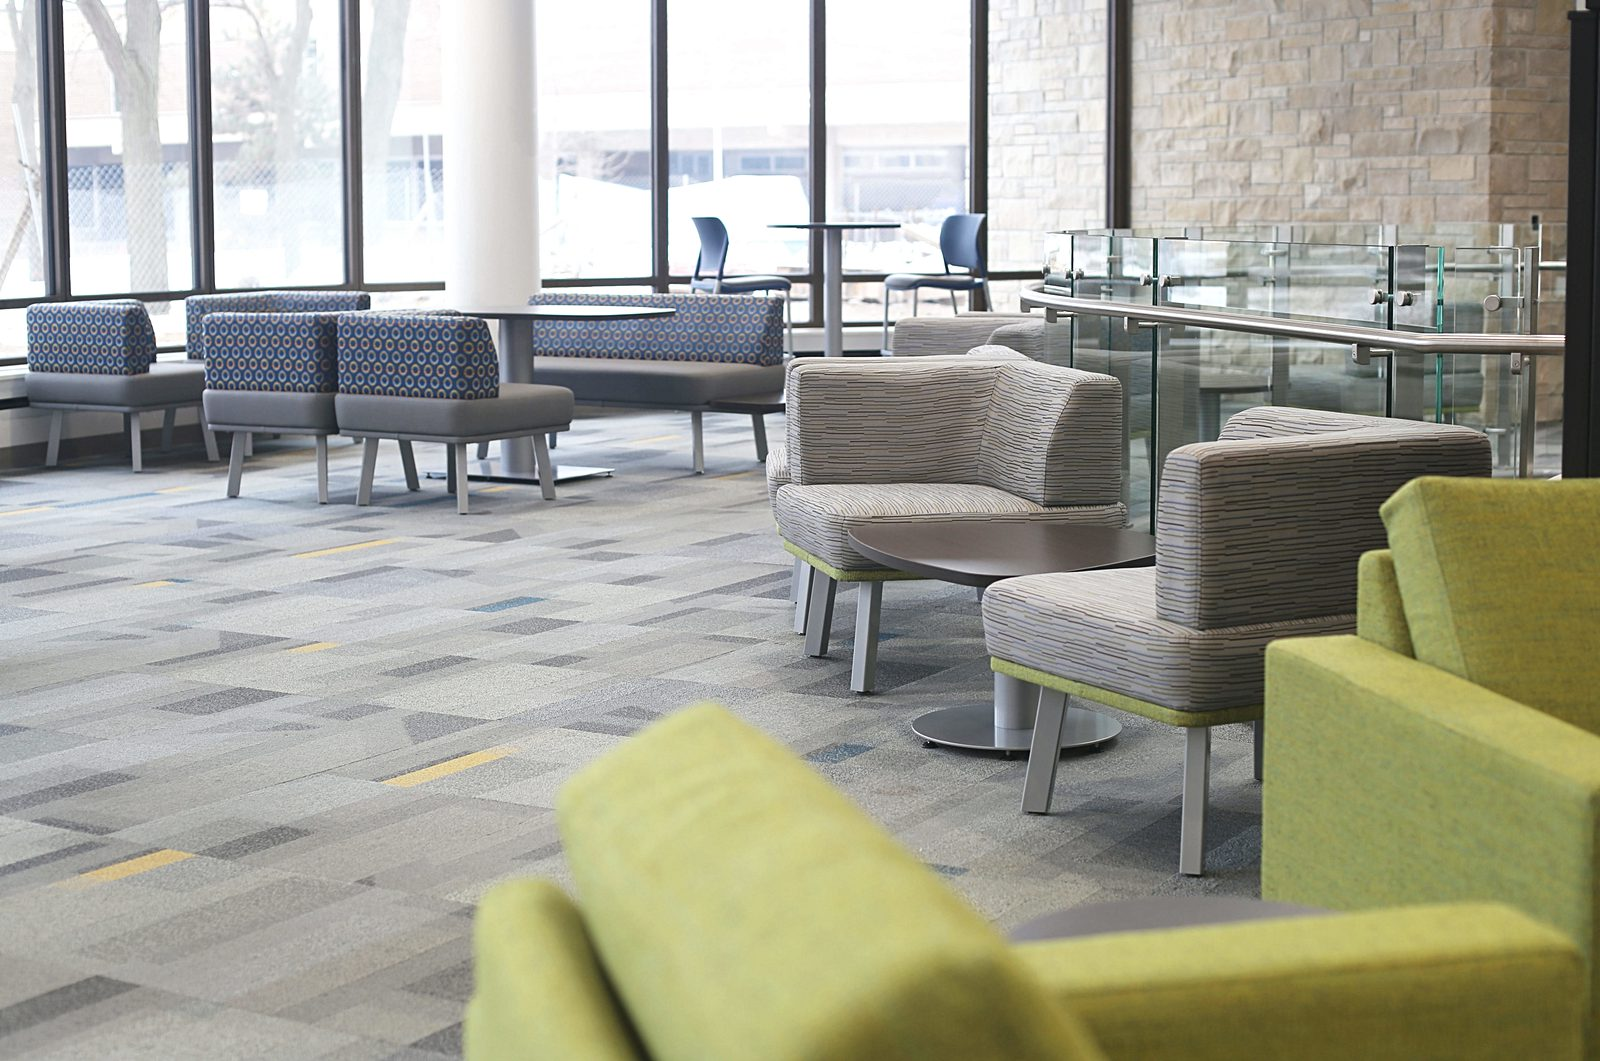 Rt London Furniture Solutions For Higher Education Hospitality And